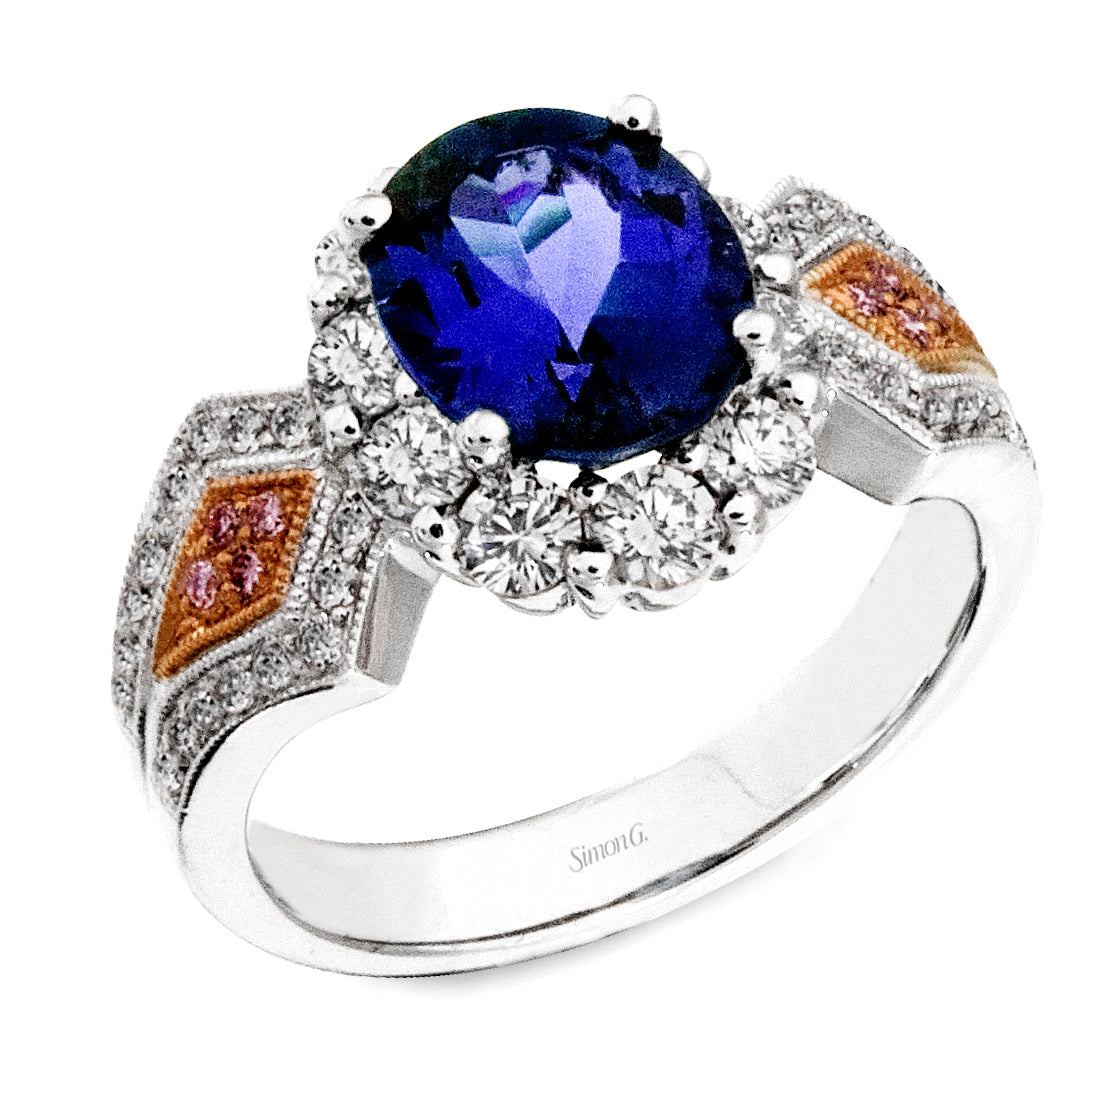 Simon G 18K White and Rose Gold Tanzanite Ring